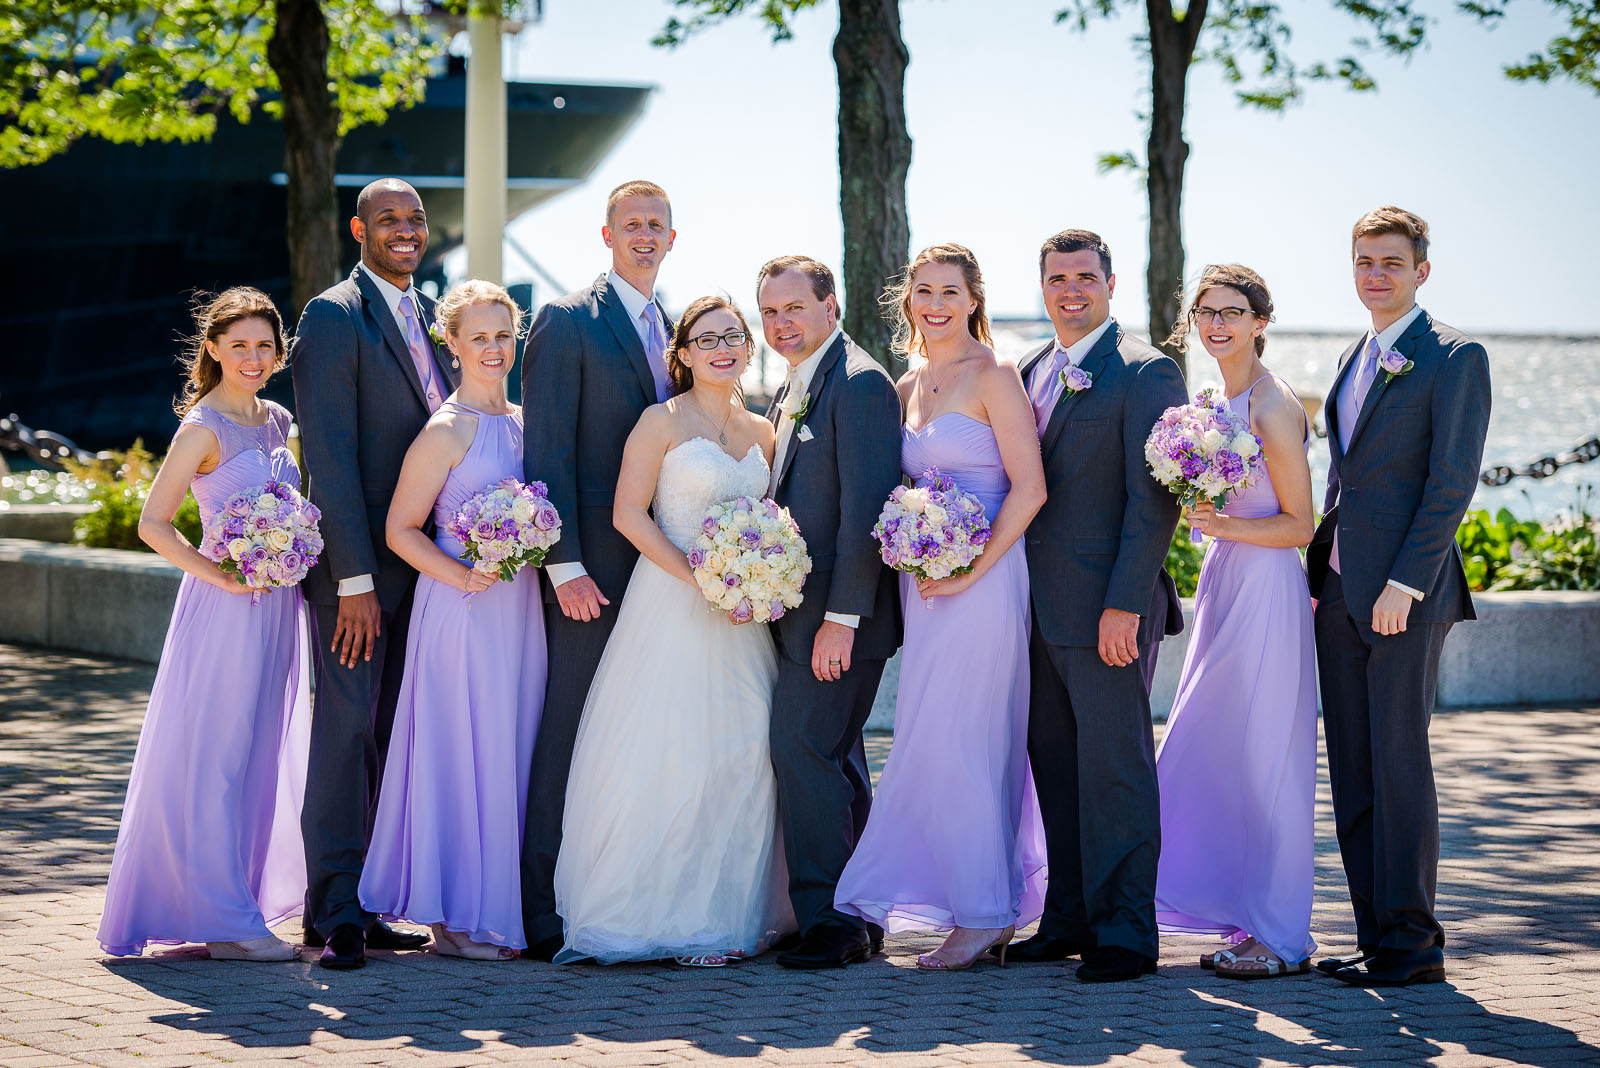 Eric_and_Christy_Photography_Blog_Julie_Adam_Wedding-15